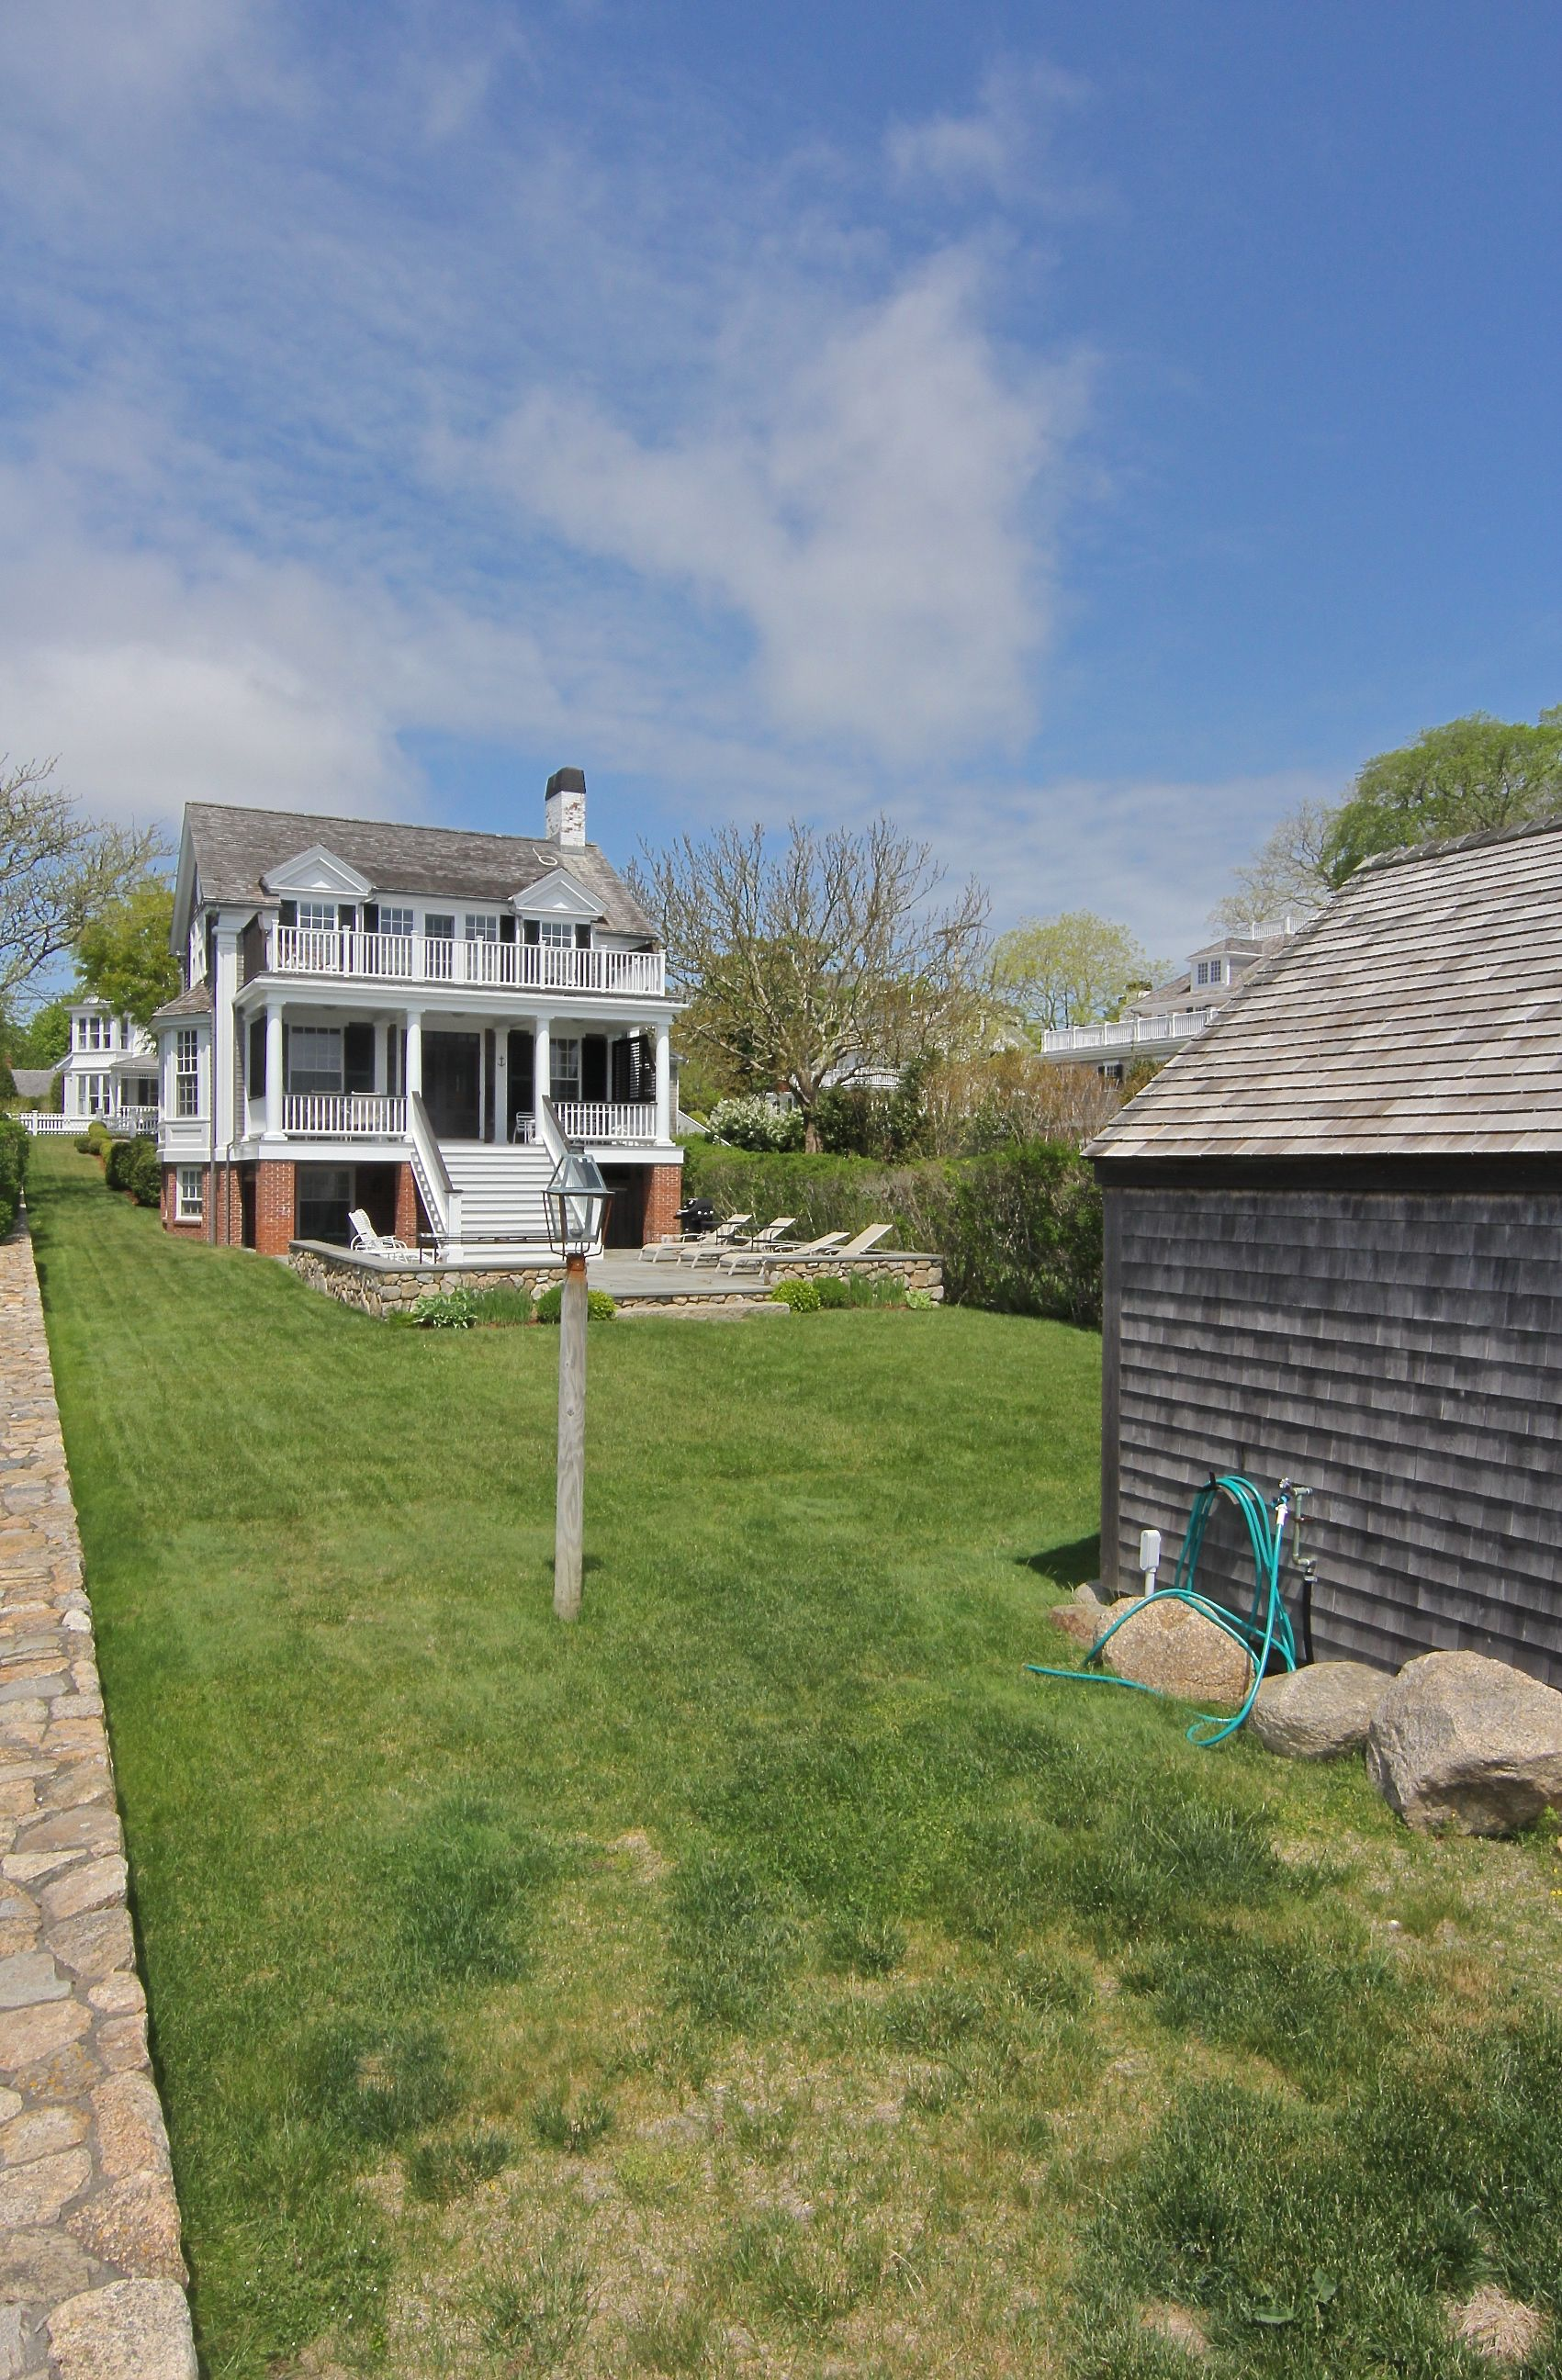 Additional photo for property listing at 53 South Water Street 53 South Water Street Edgartown, Massachusetts,02539 Estados Unidos